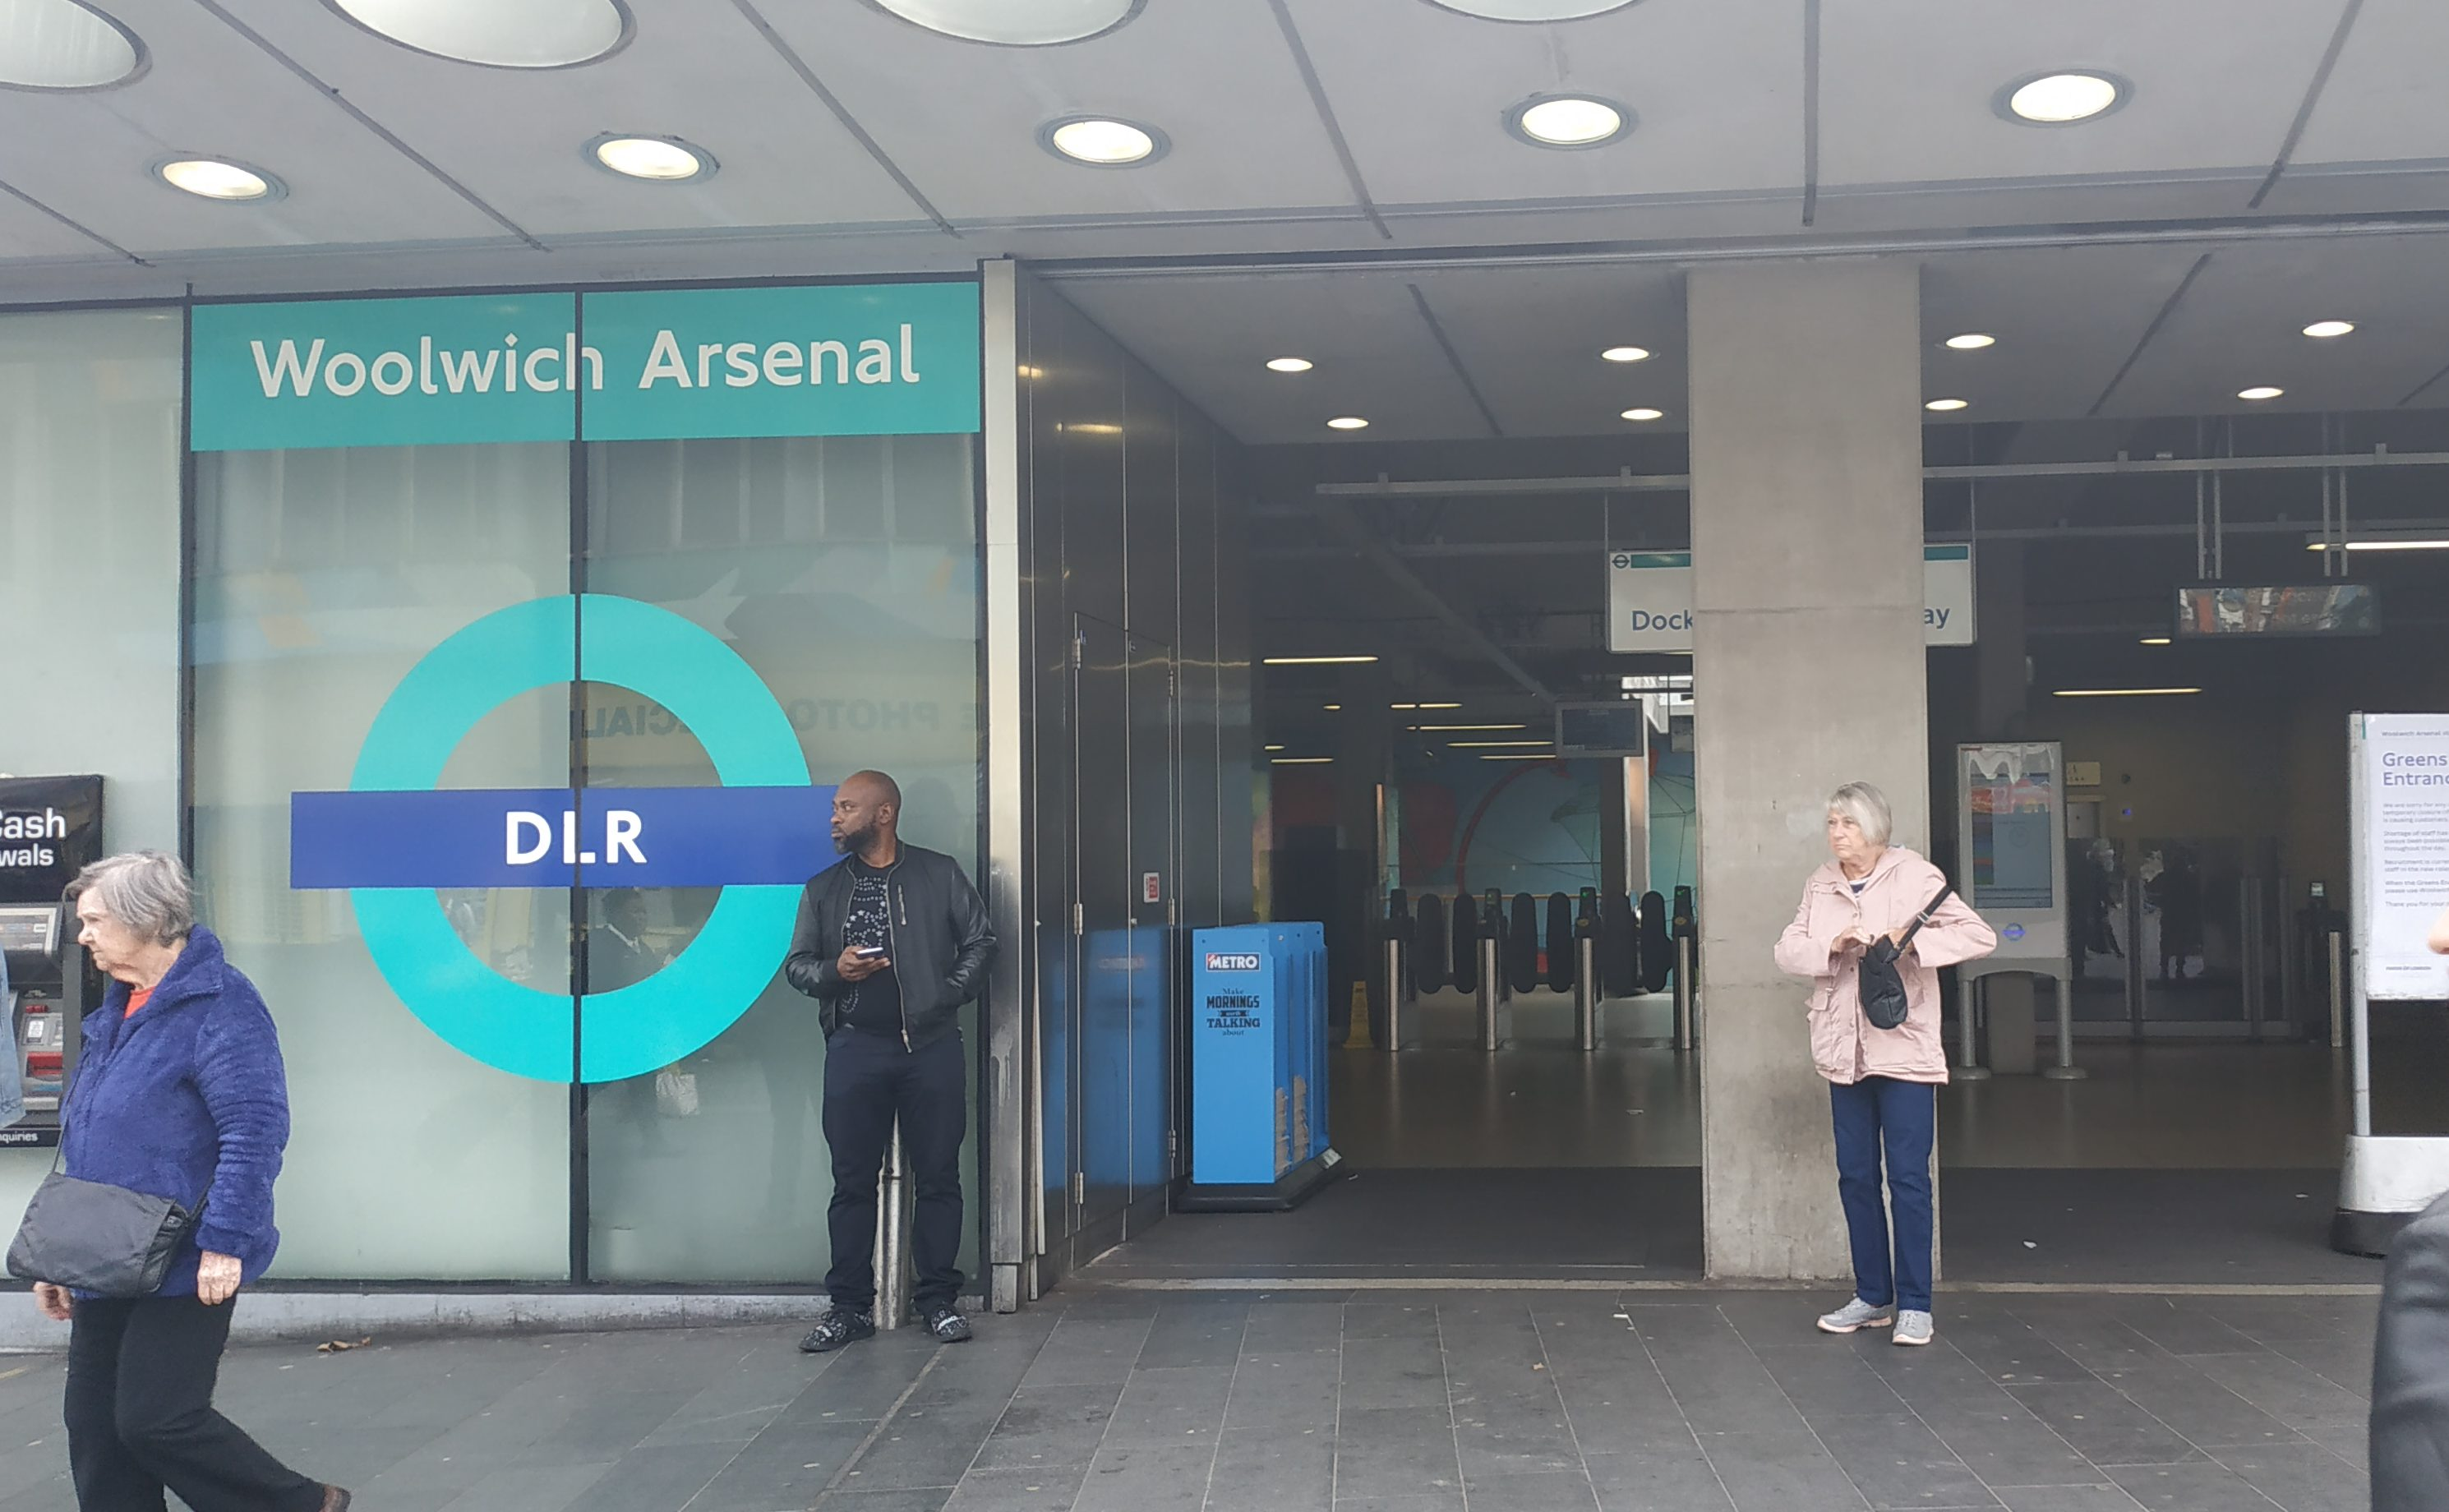 Woolwich DLR closures: MP wants to hear from passengers